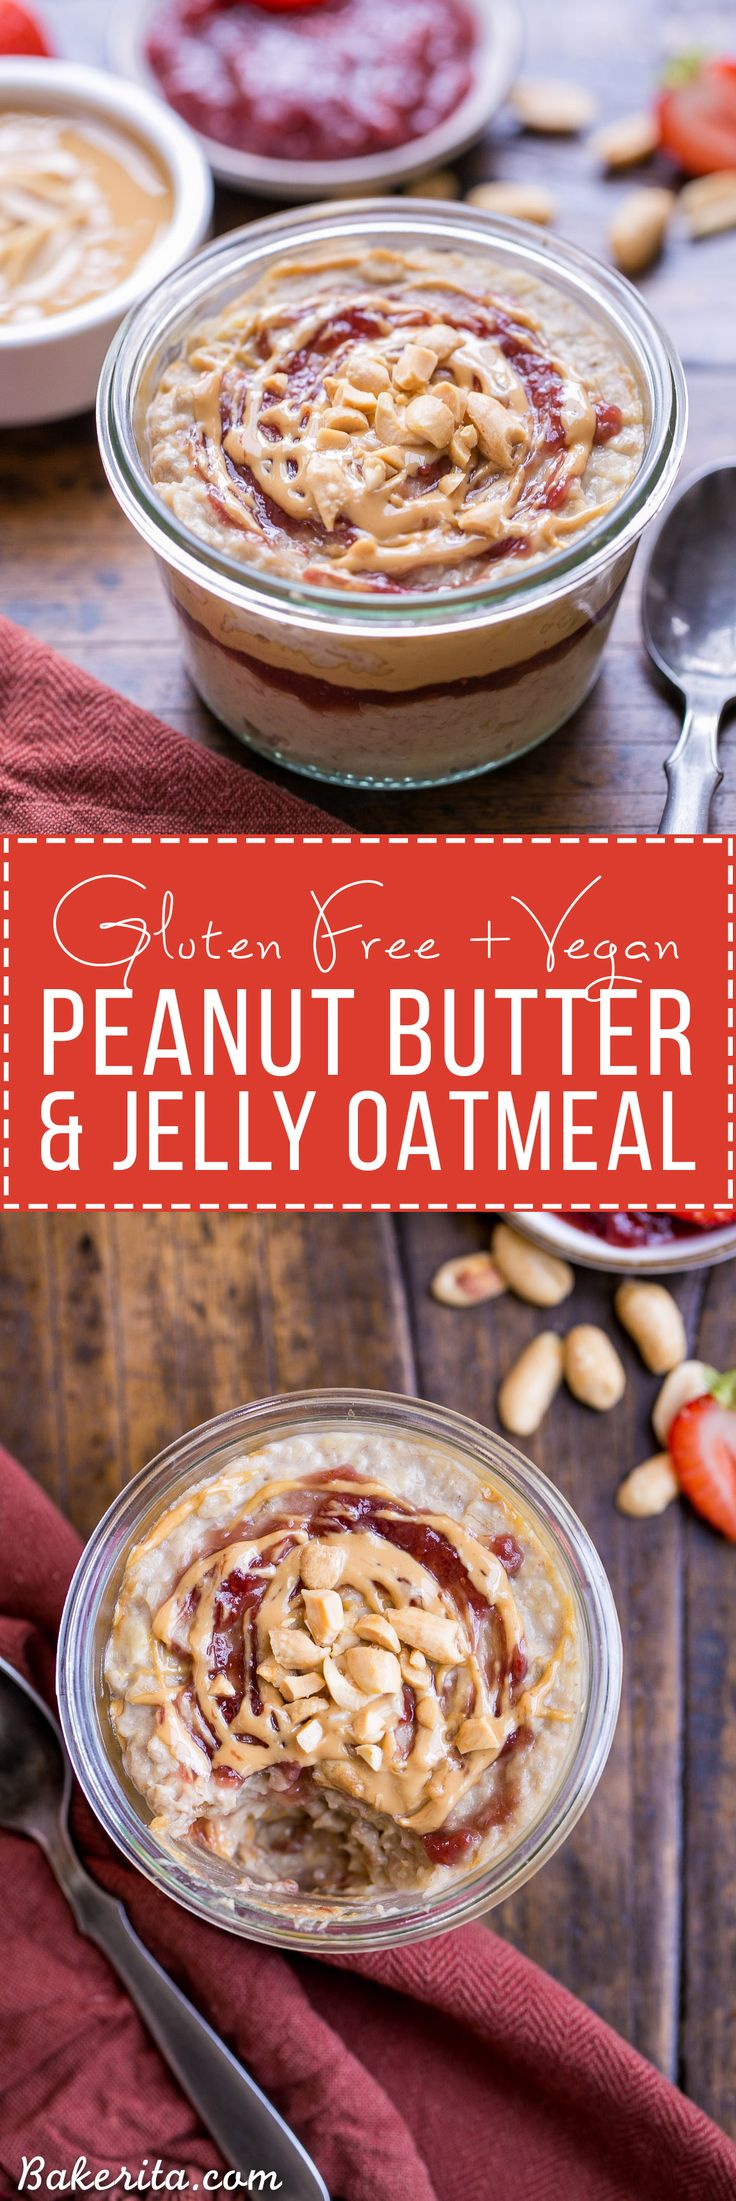 Start your morning with Peanut Butter & Jelly Oatmeal for a healthy & delicious breakfast treat! This gluten-free and vegan oatmeal is sweetened with a ripe banana.